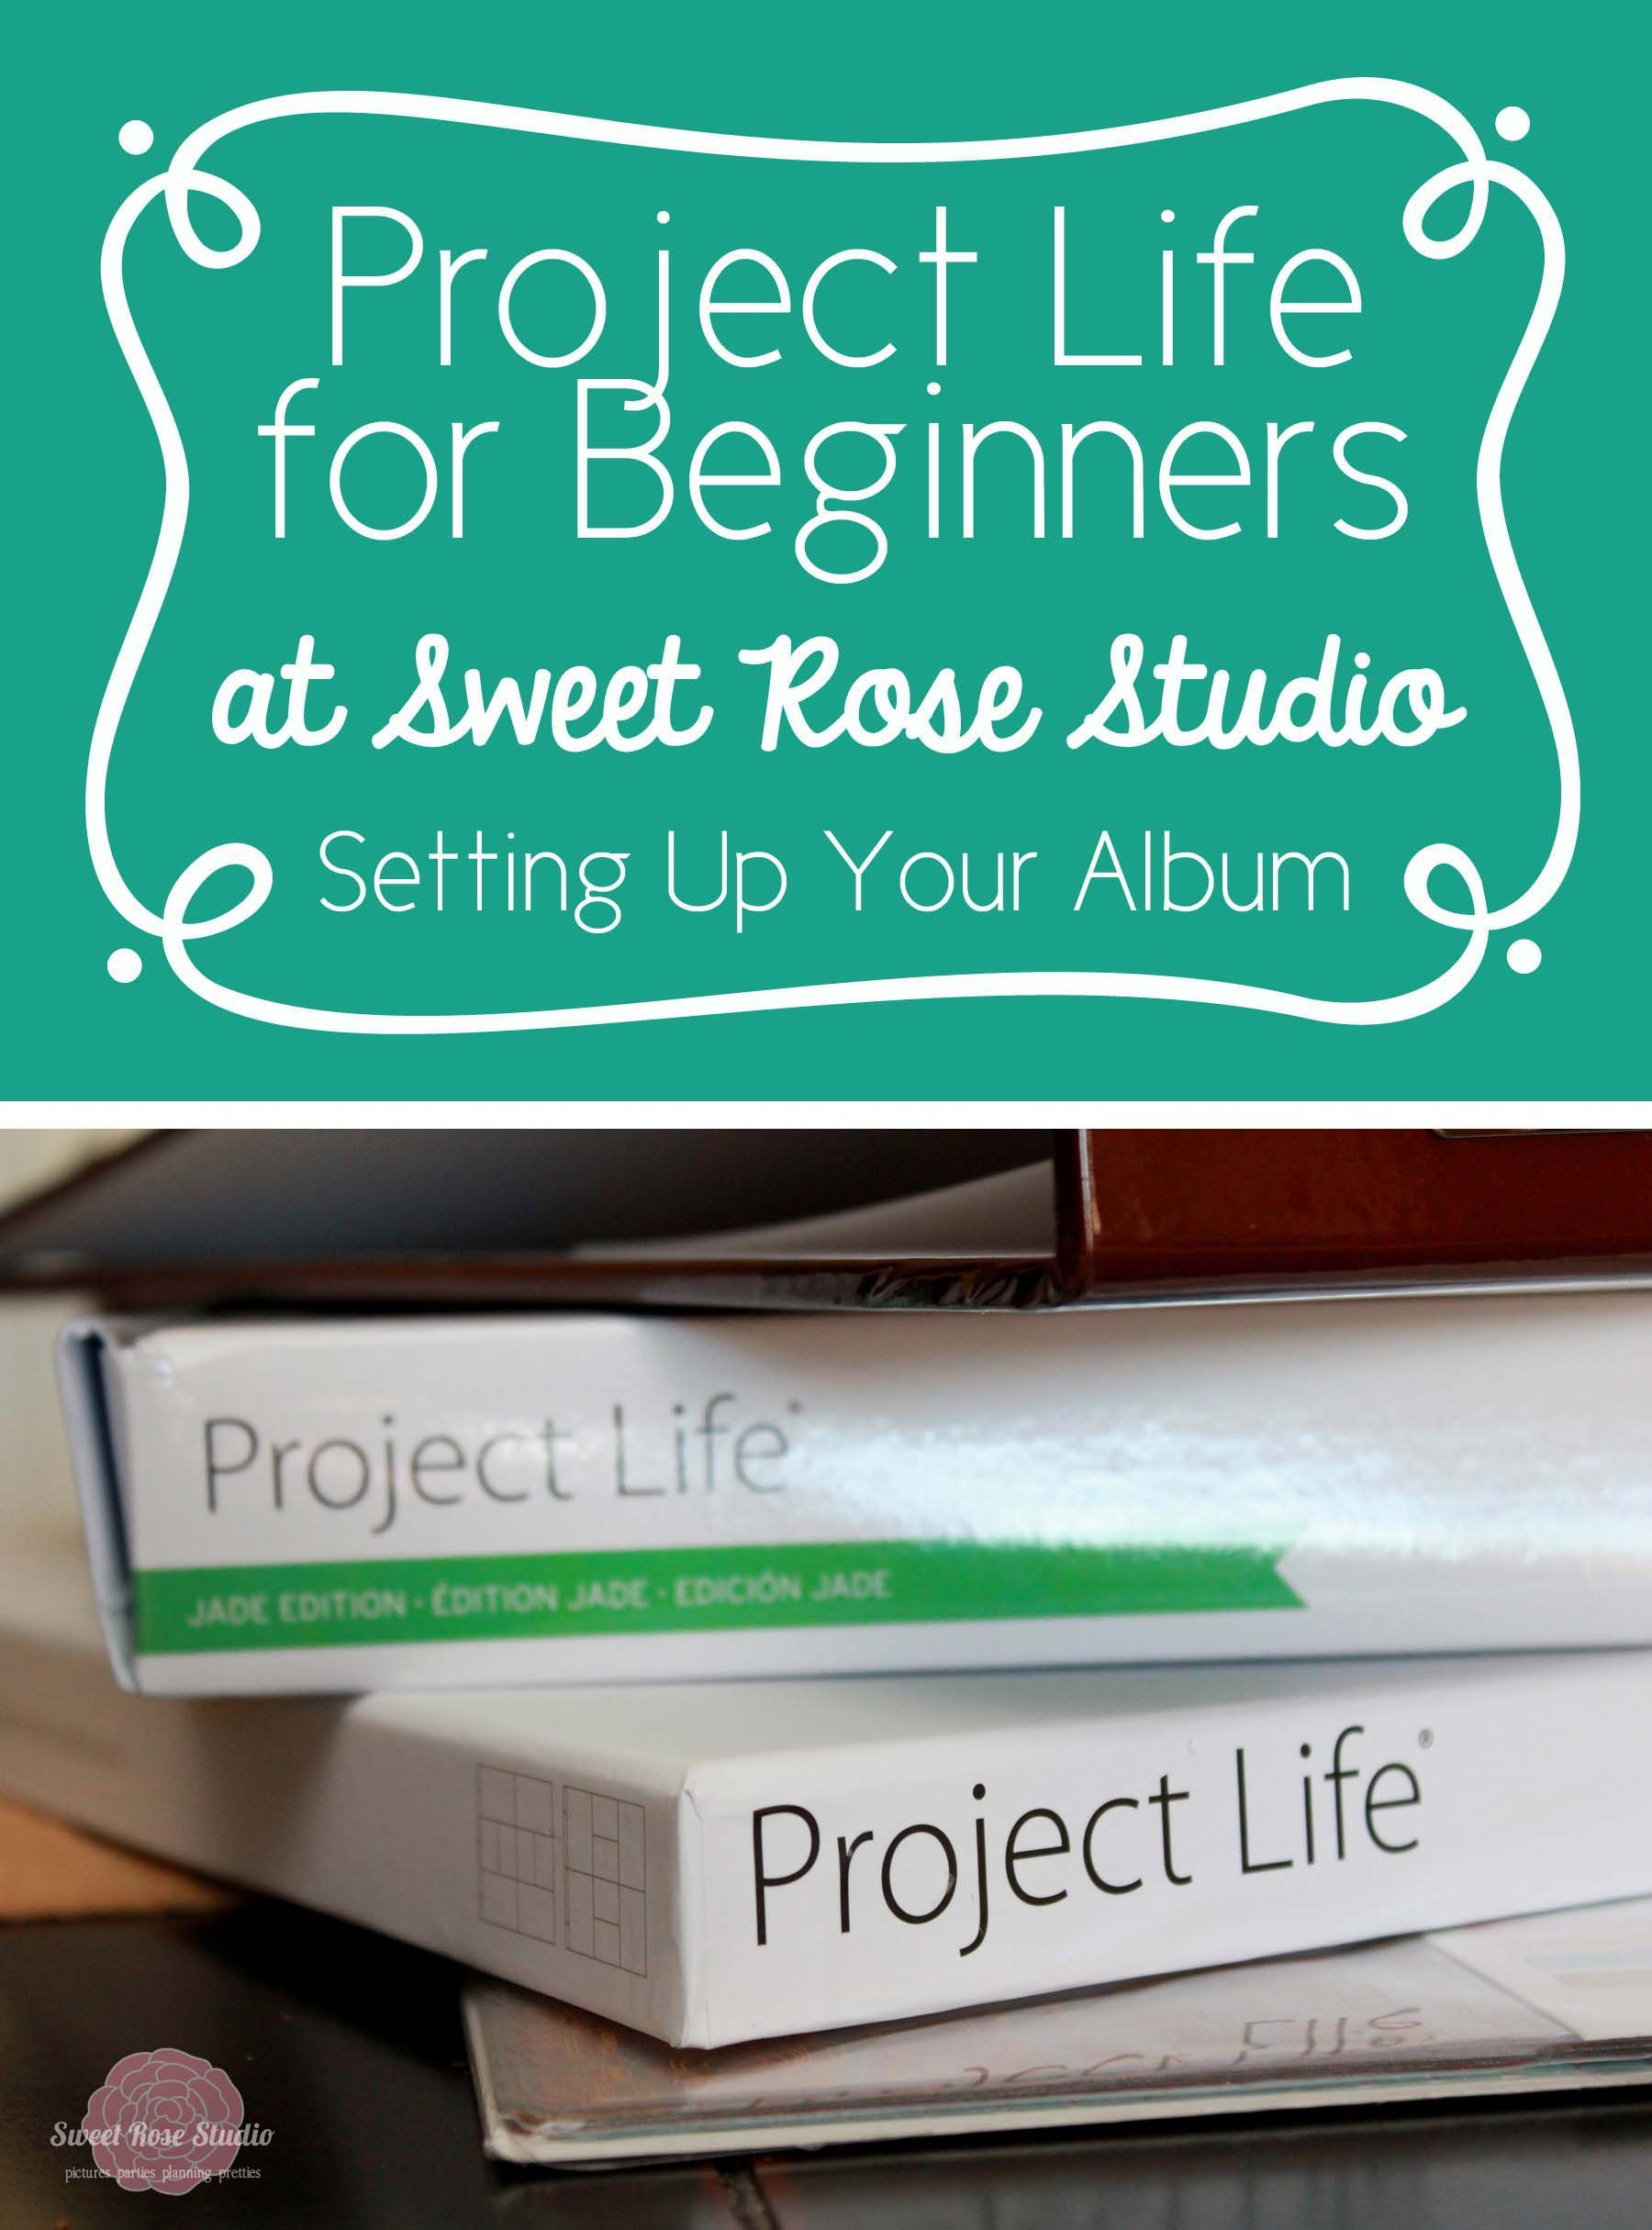 How to scrapbook with project life - Project Life For Beginners Learn How To Start From The Very Beginning Of Setting Up Your Album Putting Together Your First Page And Where To Go From